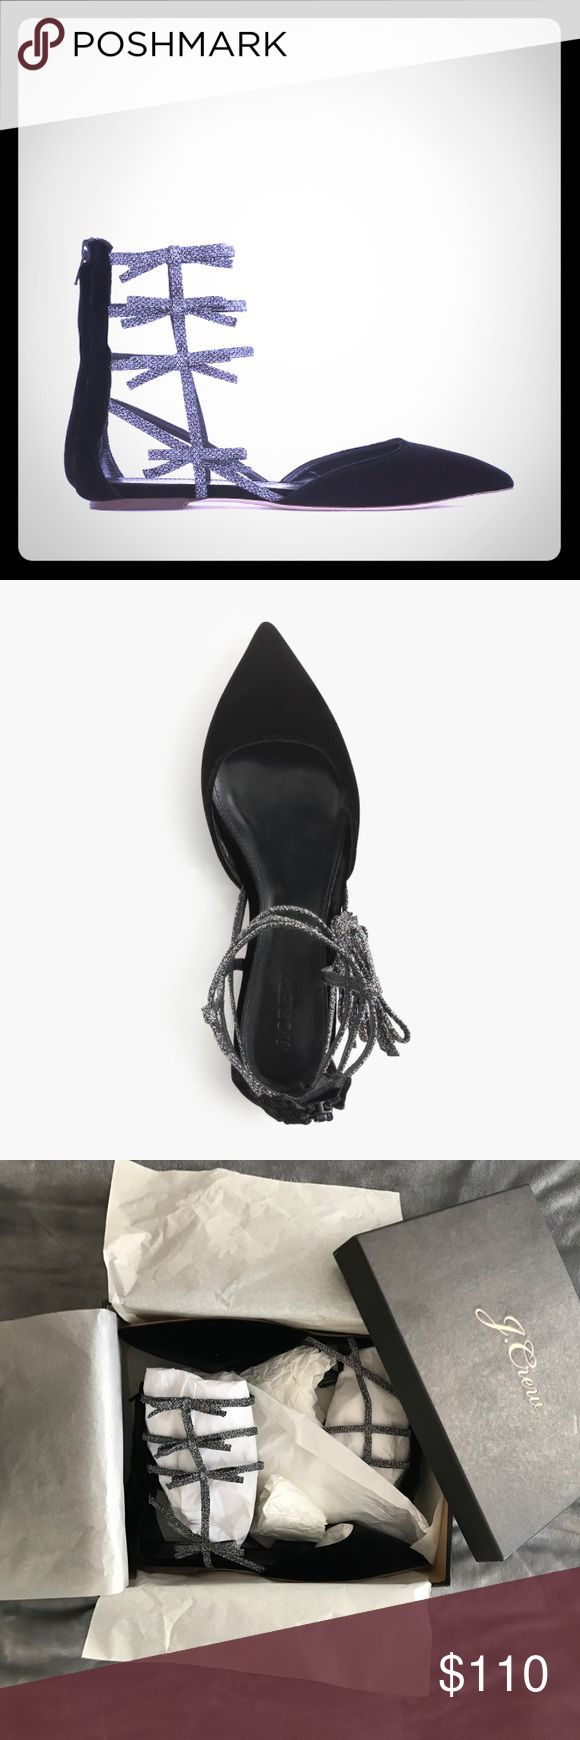 NEW JCrew Velvet Bow Gladiator Flats Gorgeous limited edition velvet flat with glitter and bow gladiator cage that runs up the ankle. New in box, never worn. J. Crew Shoes Flats & Loafers